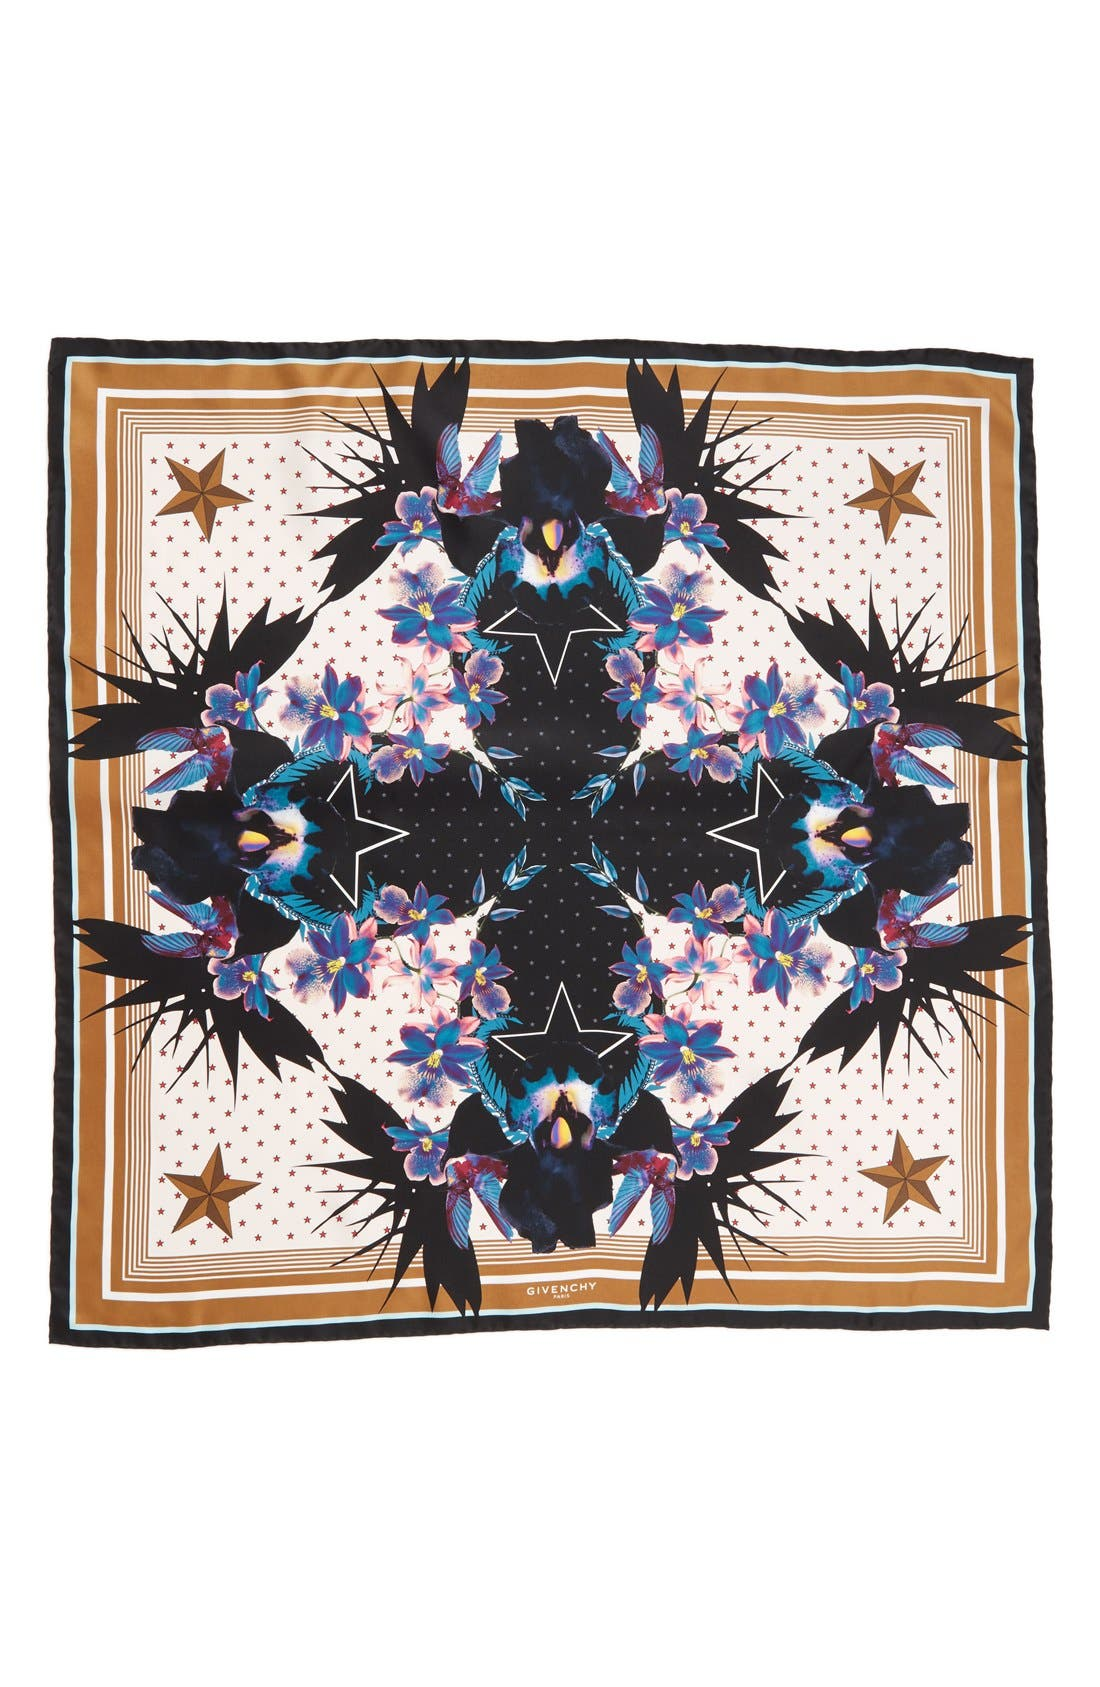 Givenchy 'Ultra Paradise' Floral Silk Scarf